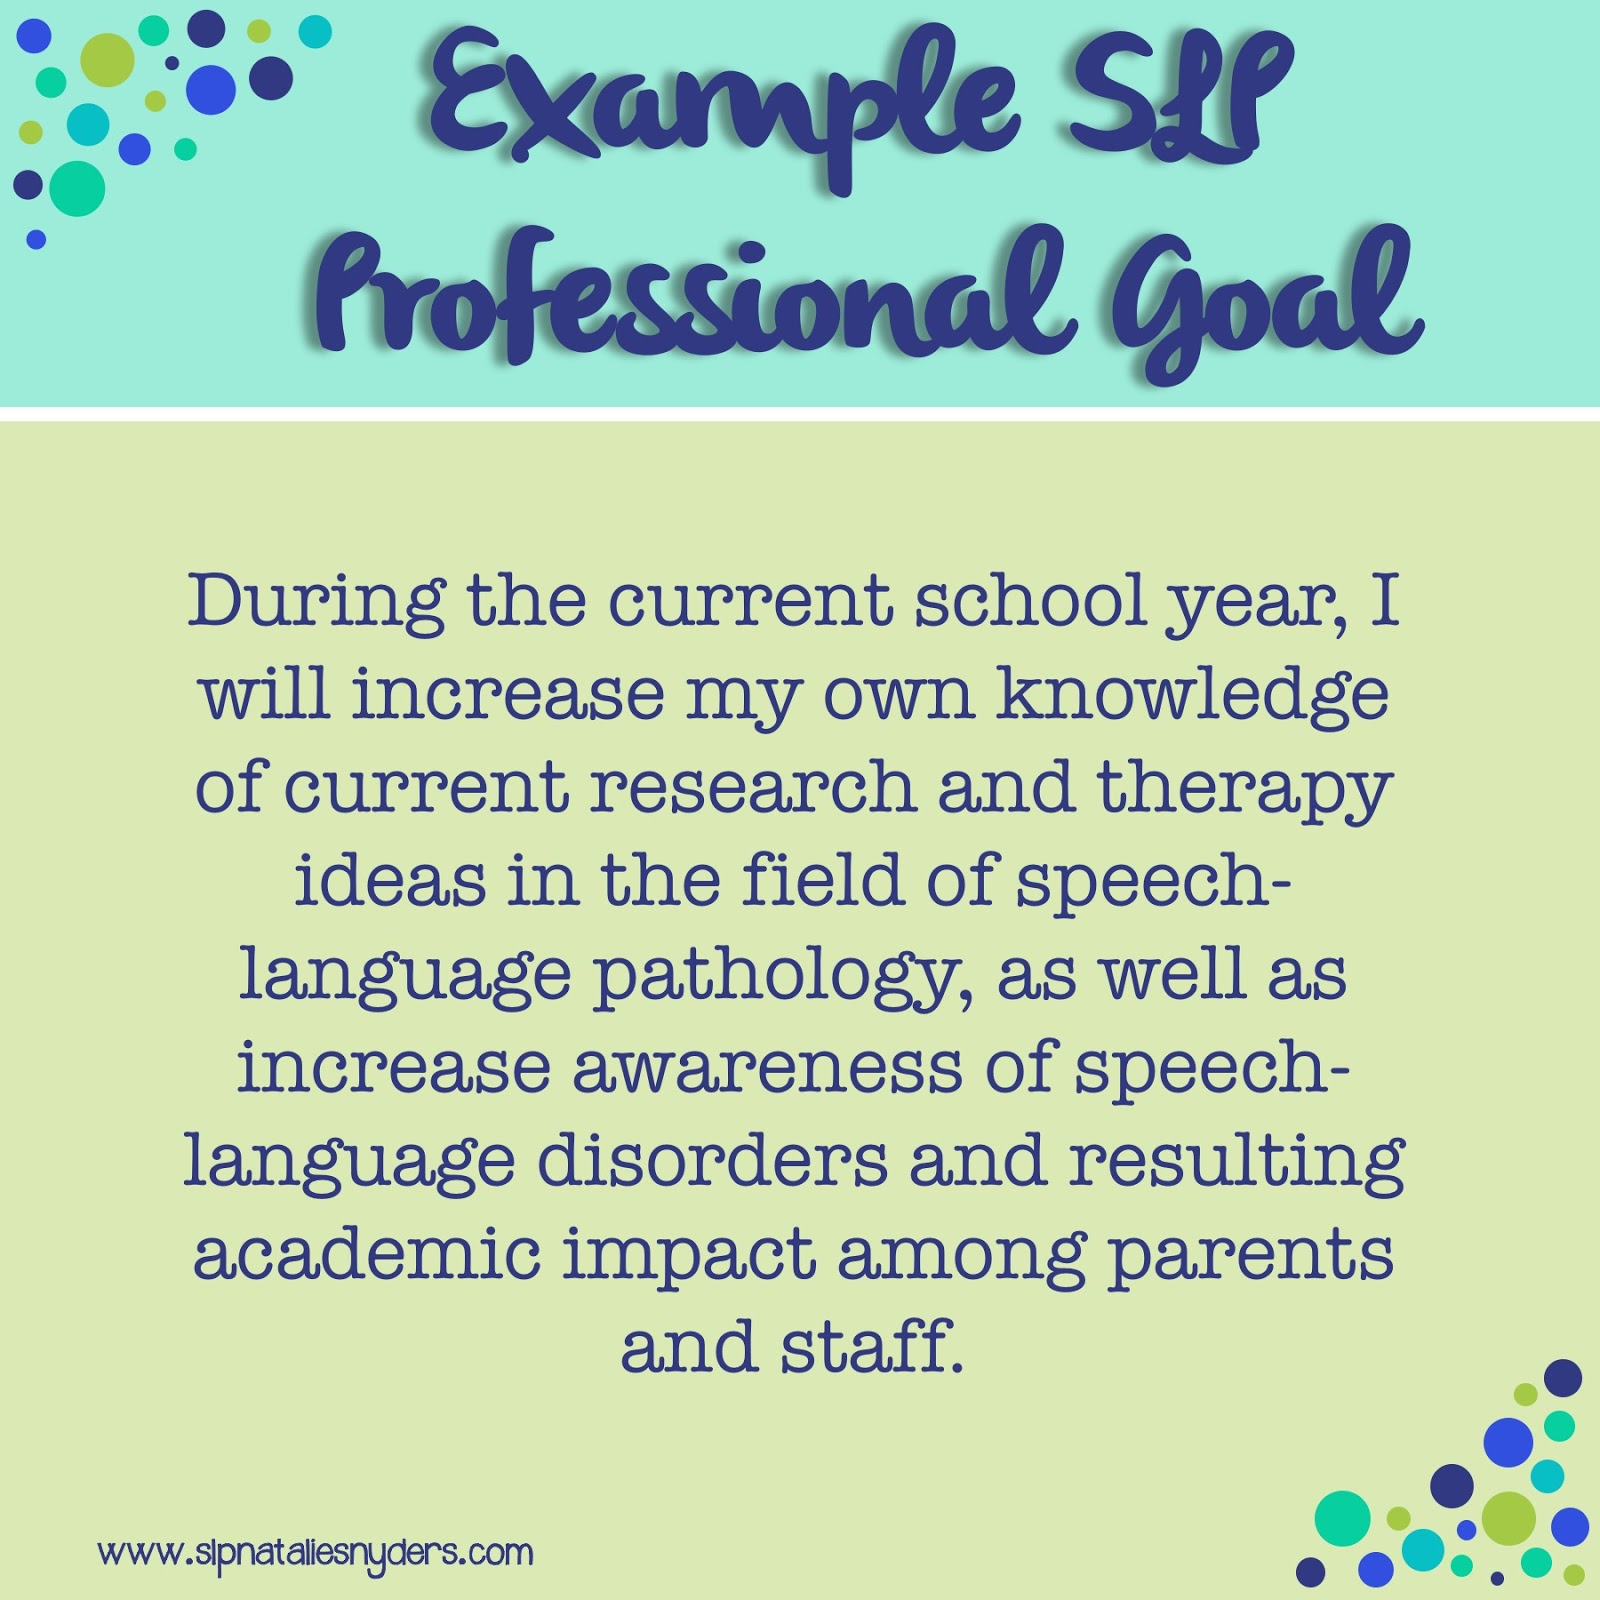 setting professional goals as an slp natalie snyders slp here is the professional goal i wrote for myself during the past school year